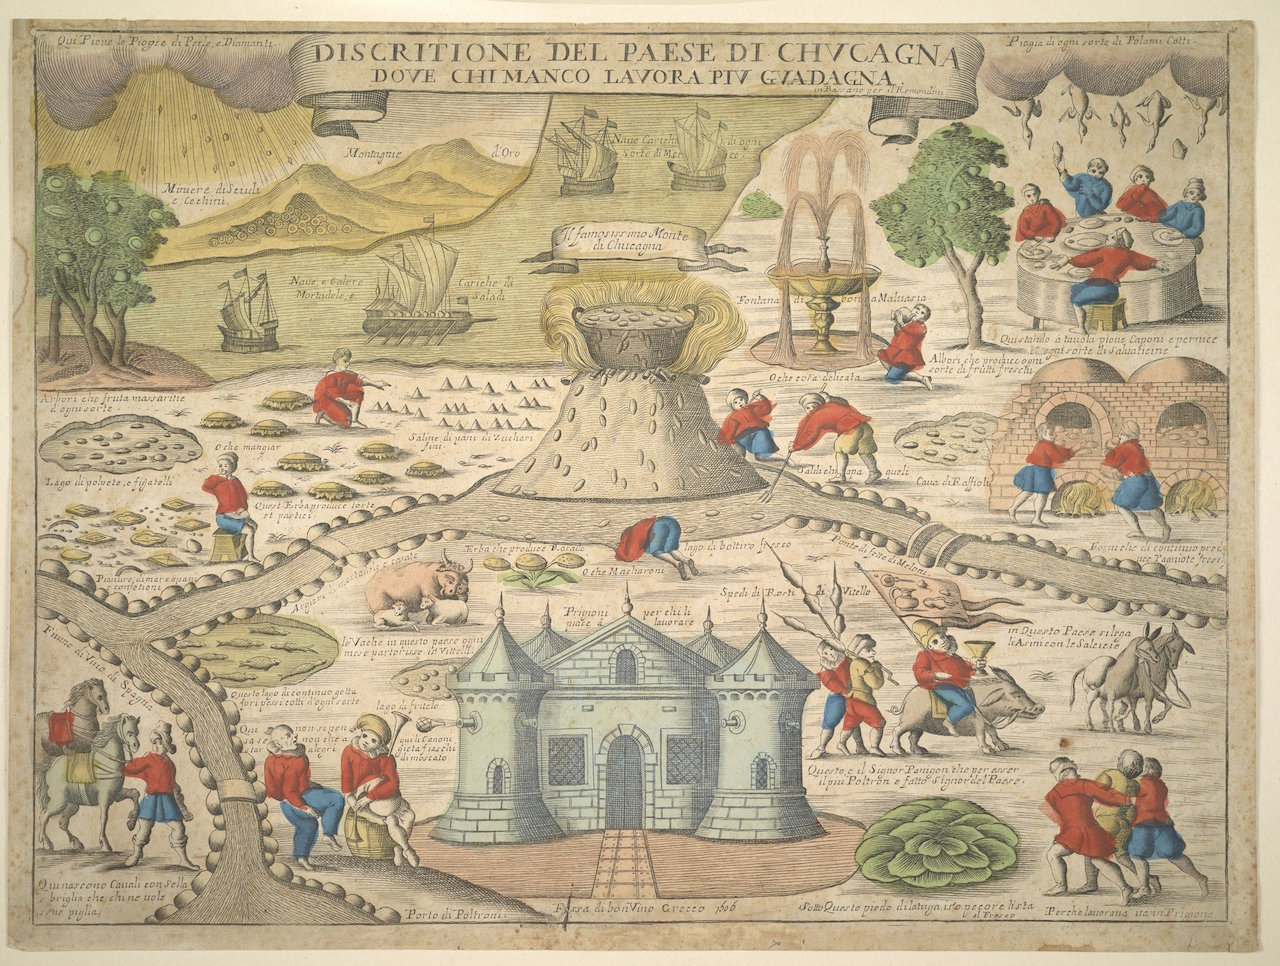 Description of the Land of Cockaigne, where he who works the least earns the most; Remondini family (Bassano); 1606; engraving; Sheet: 41.5 x 55.5 cm (16 5/16 x 21 7/8 in.); 2014.PR.72; Not Researched